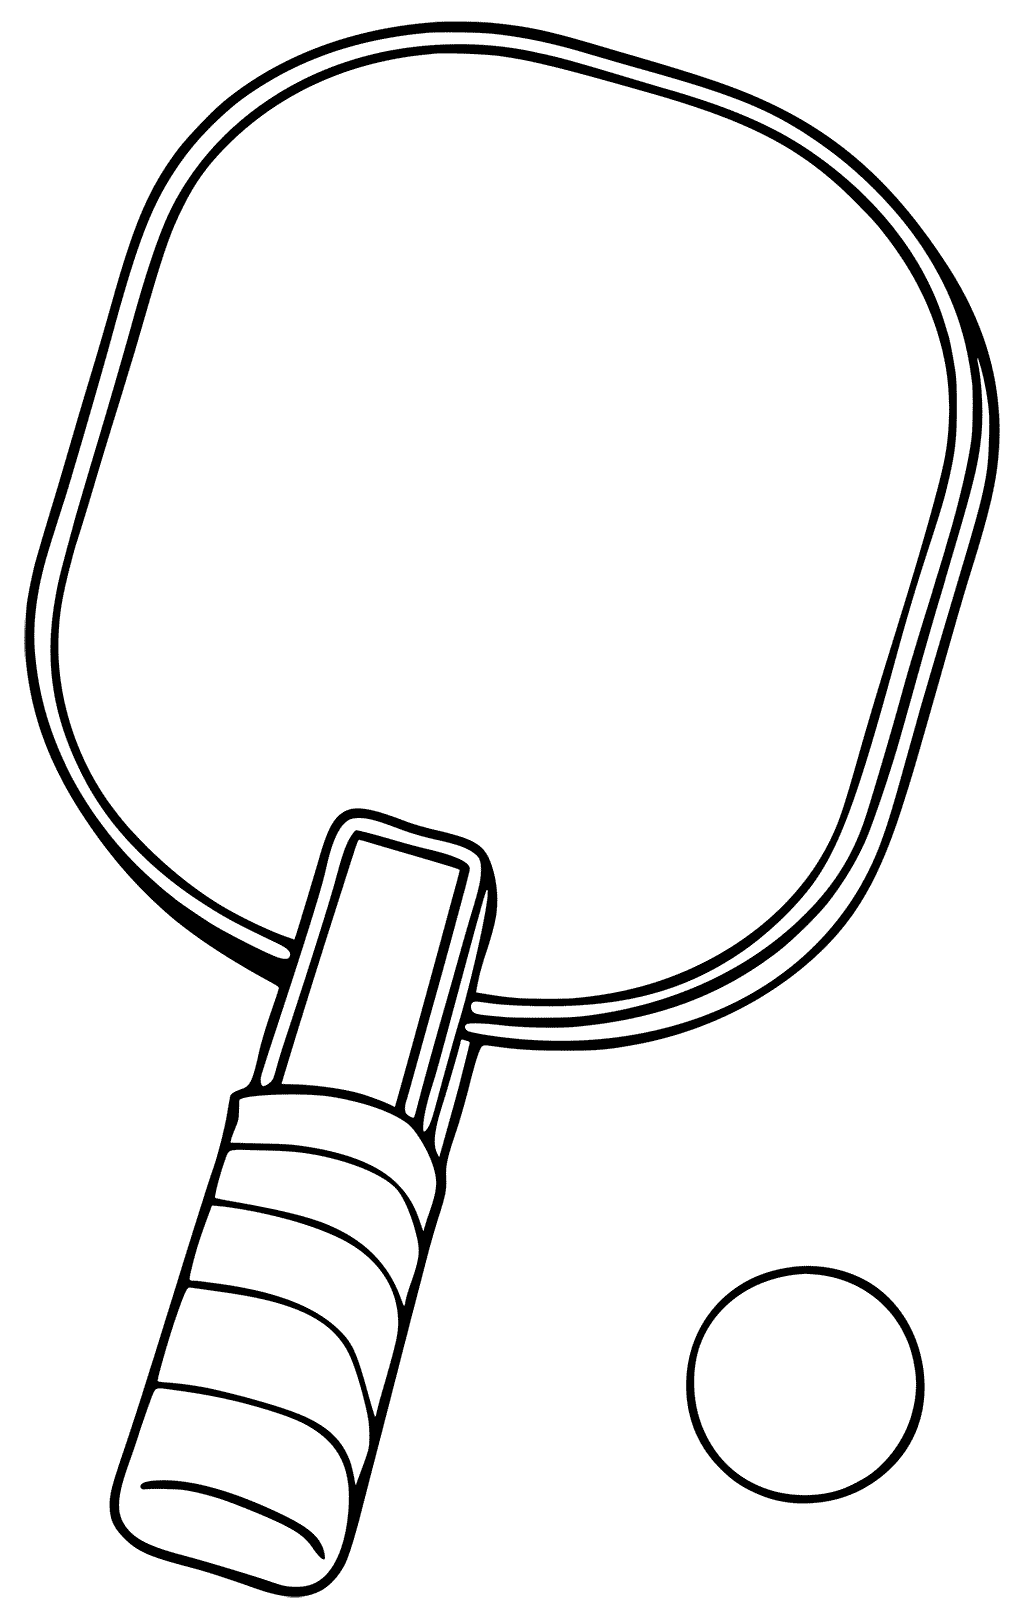 Simple Ping Pong Coloring Pages